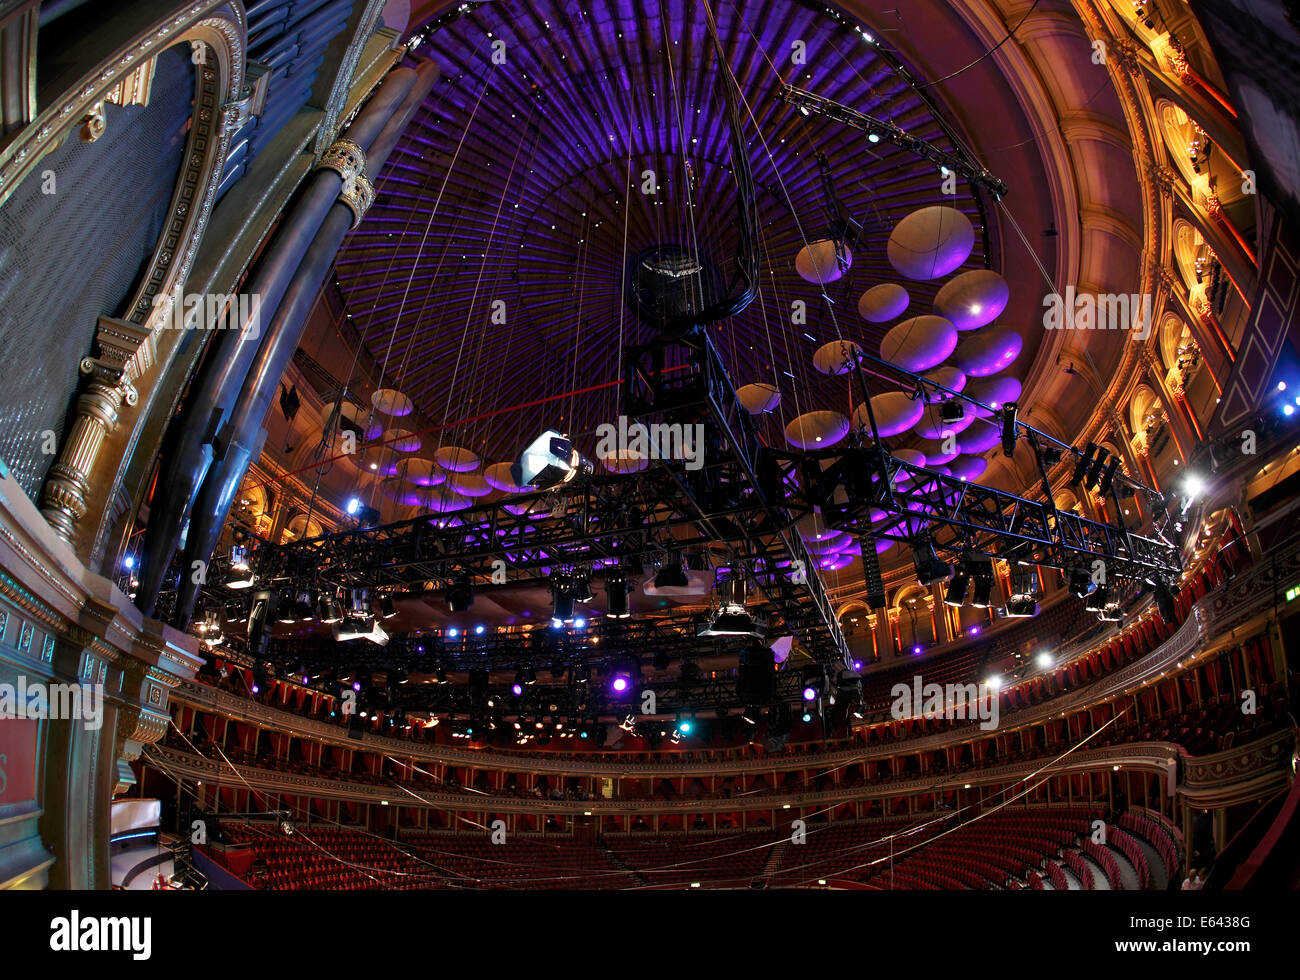 Acoustic sound panels and lighting rig in the roof of the Royal Albert Hall, London, UK - Stock Image